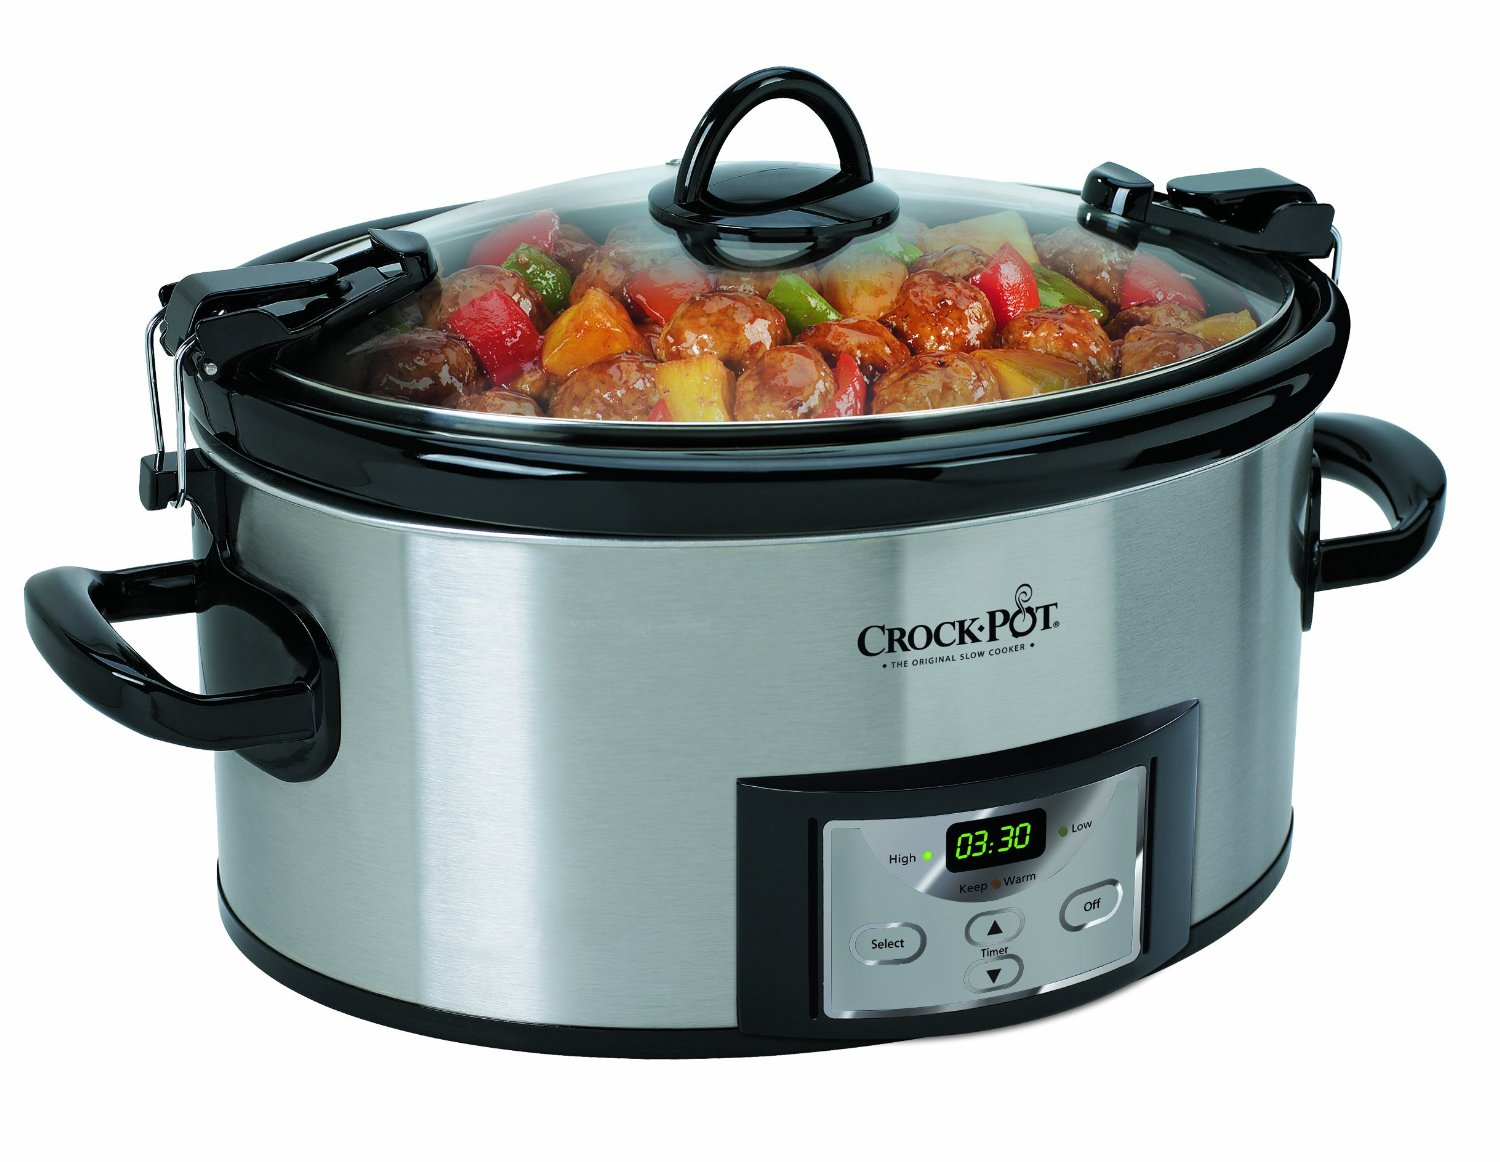 slow cooker as anniversary gift for busy working wife